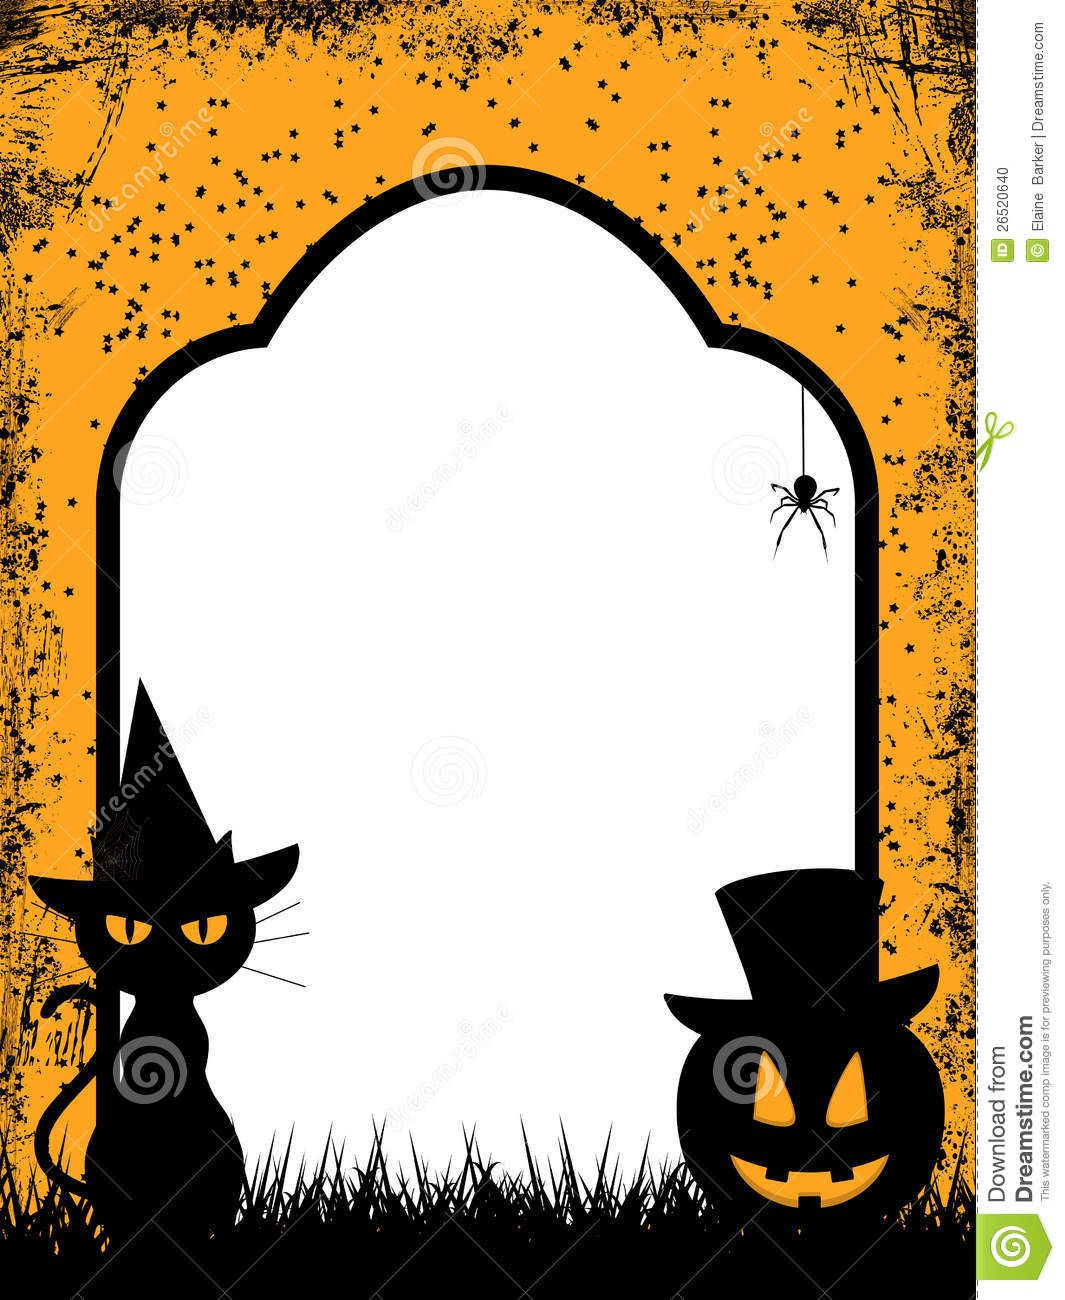 11++ Halloween party clipart black and white info